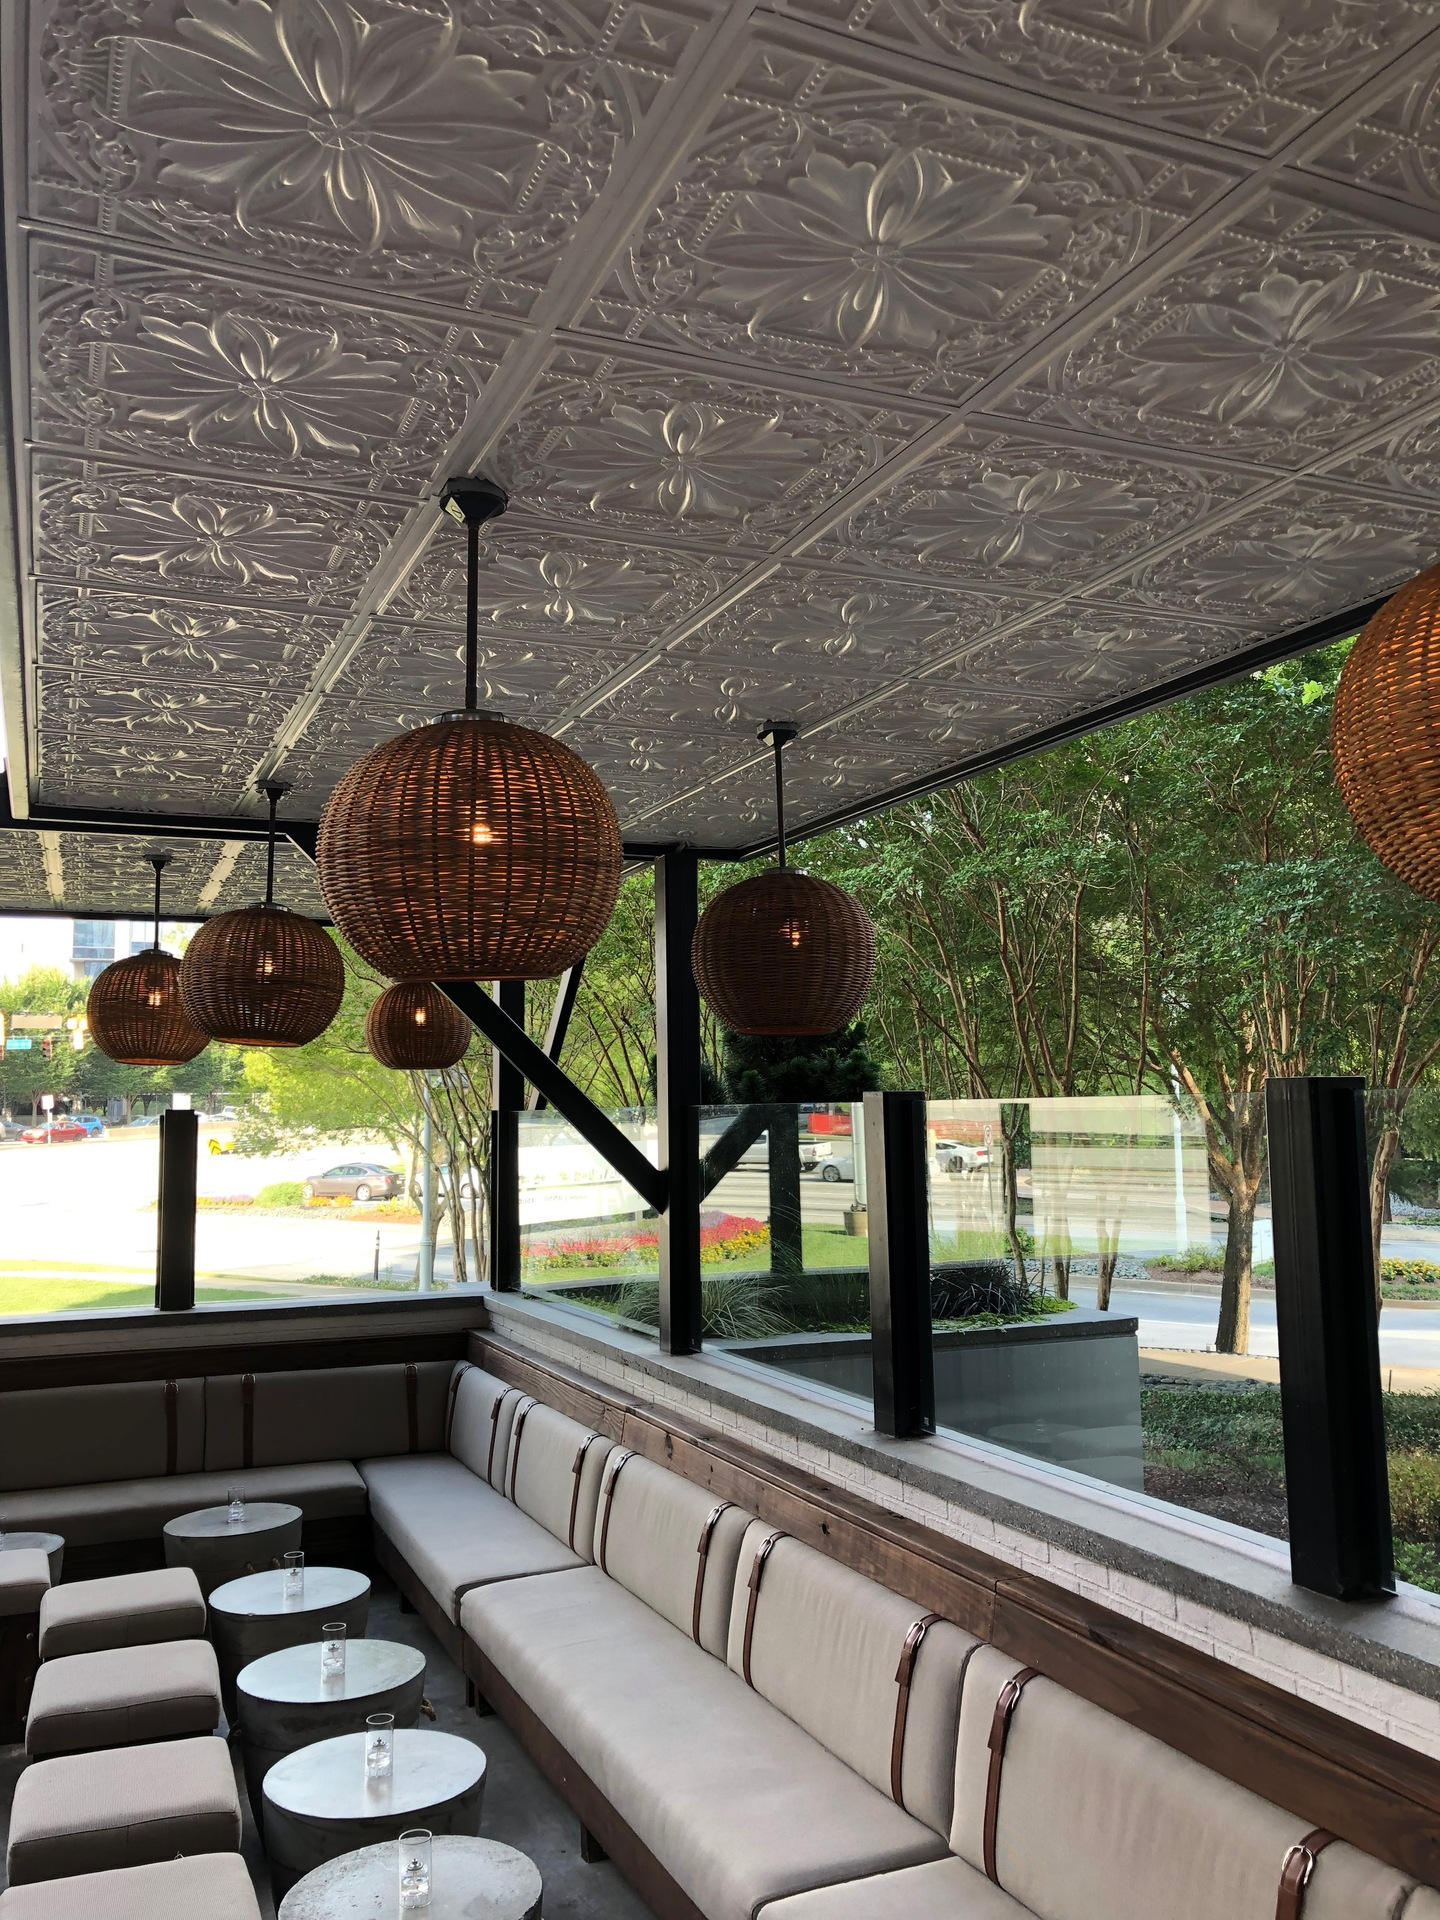 Have a drink and admire the white tin ceiling tiles and hanging lights.